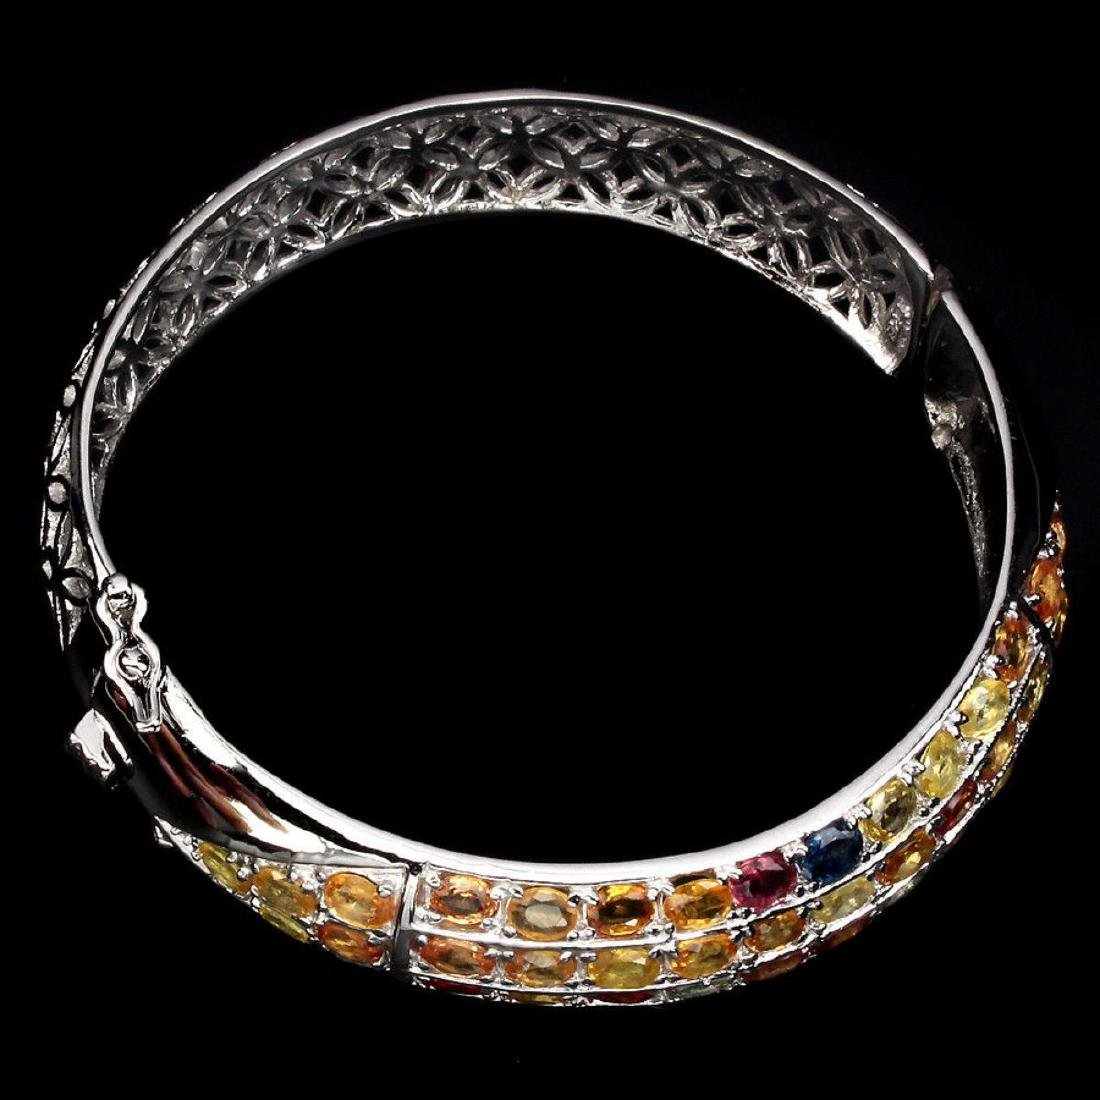 Natural Fancy Color Sapphire 163.14 Cts Bangle - 3